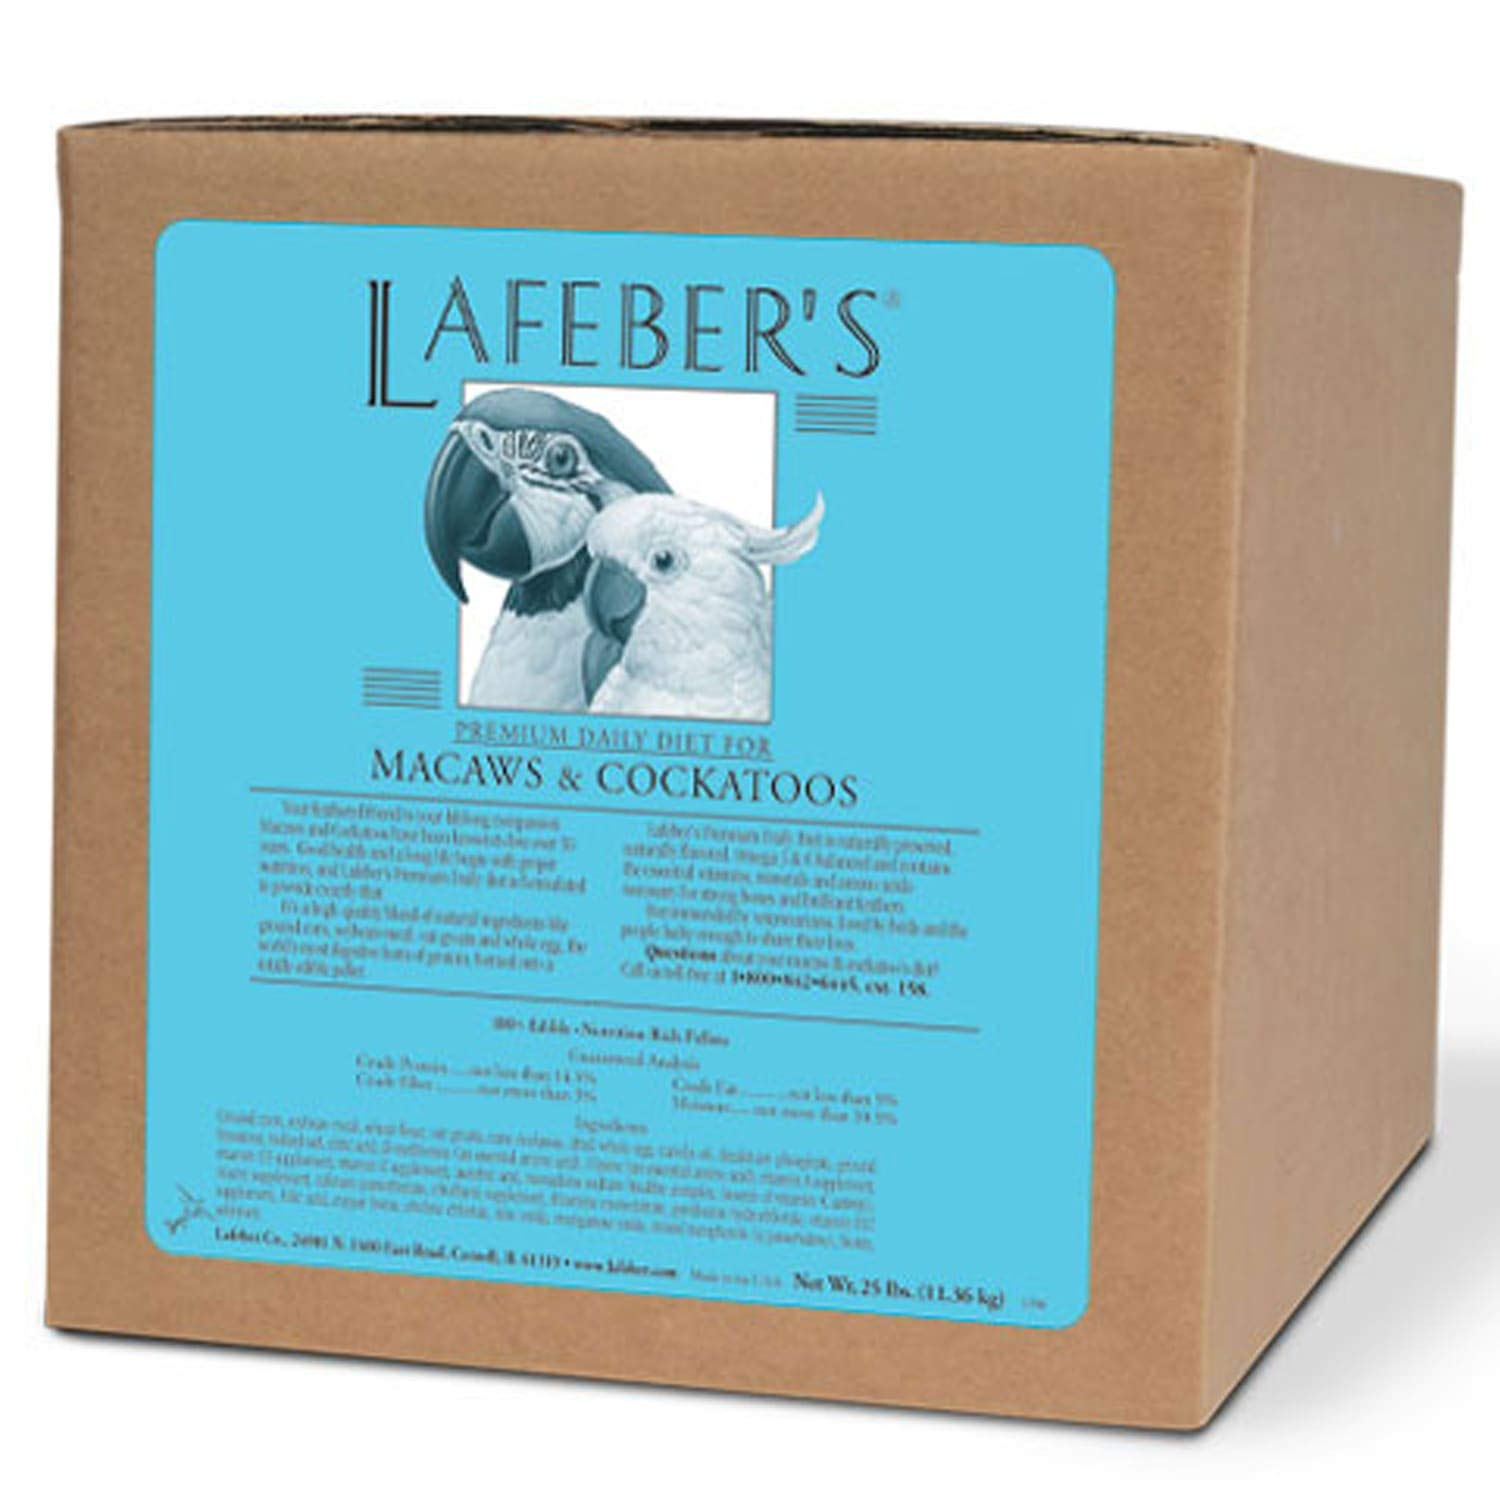 LAFEBER'S Premium Daily Diet or Gourmet Fruit Pellets Pet Bird Food, Made with Non-GMO and Human-Grade Ingredients, for…